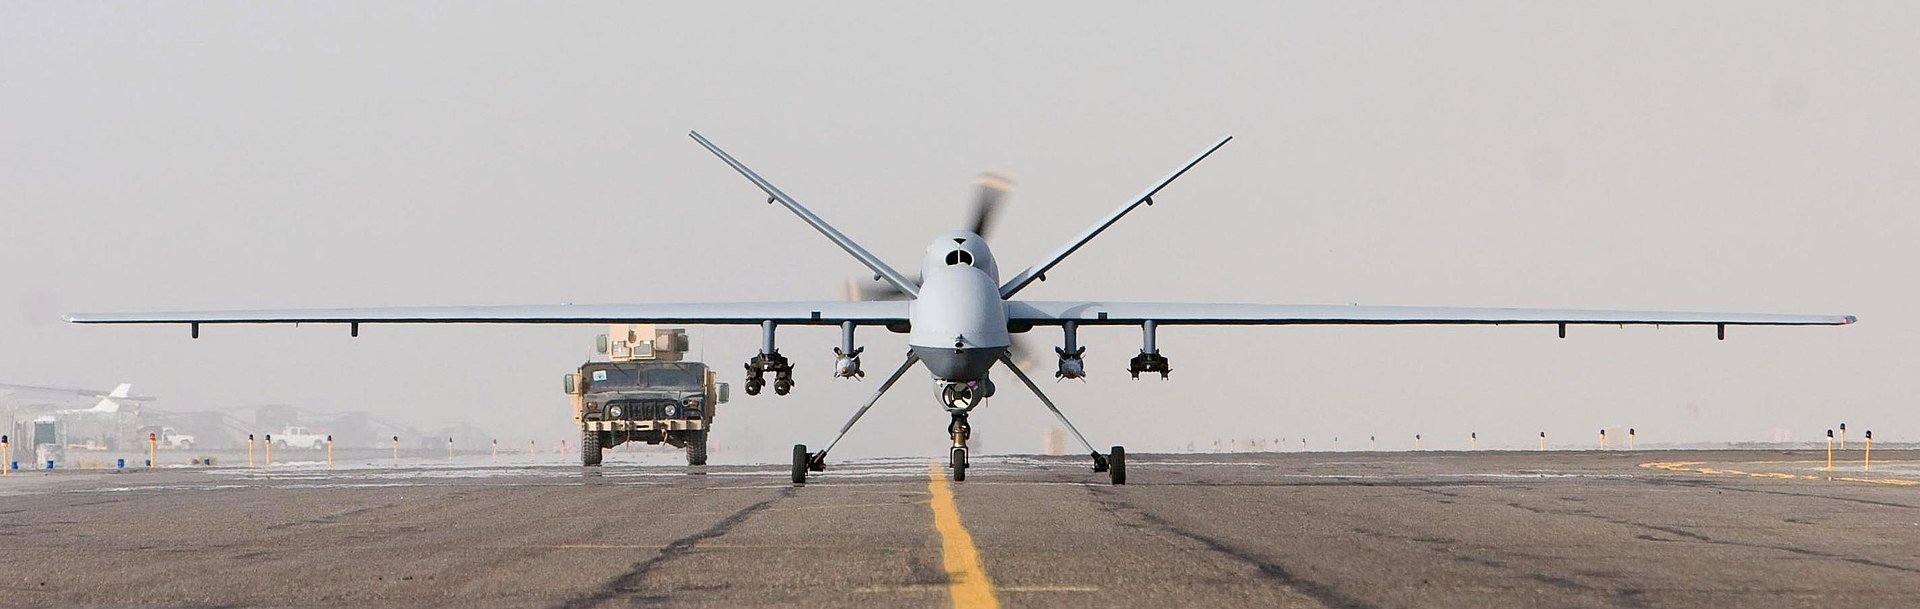 1920px-MQ-9_Afghanistan_takeoff_1_Oct_07